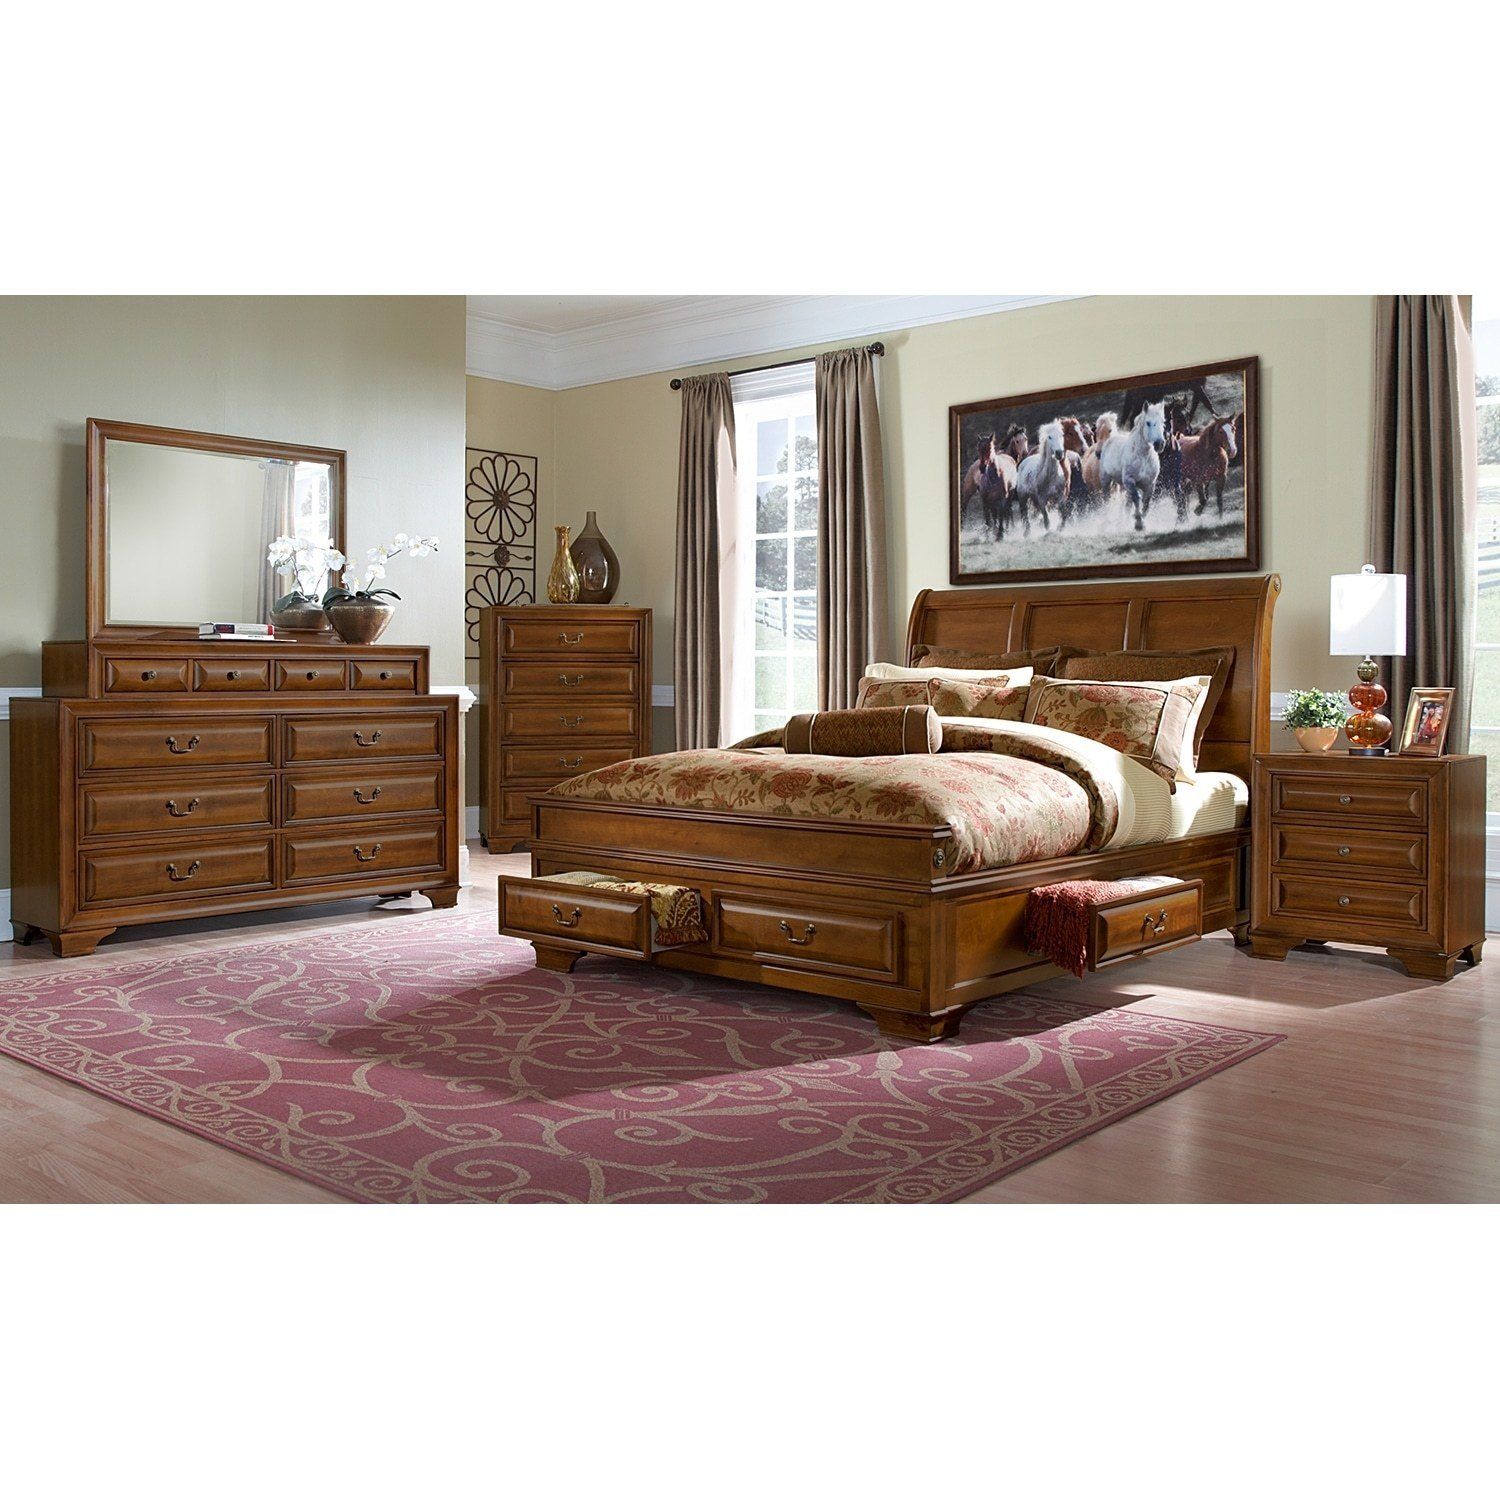 Best Sanibelle King Storage Bed Pine Value City Furniture With Pictures